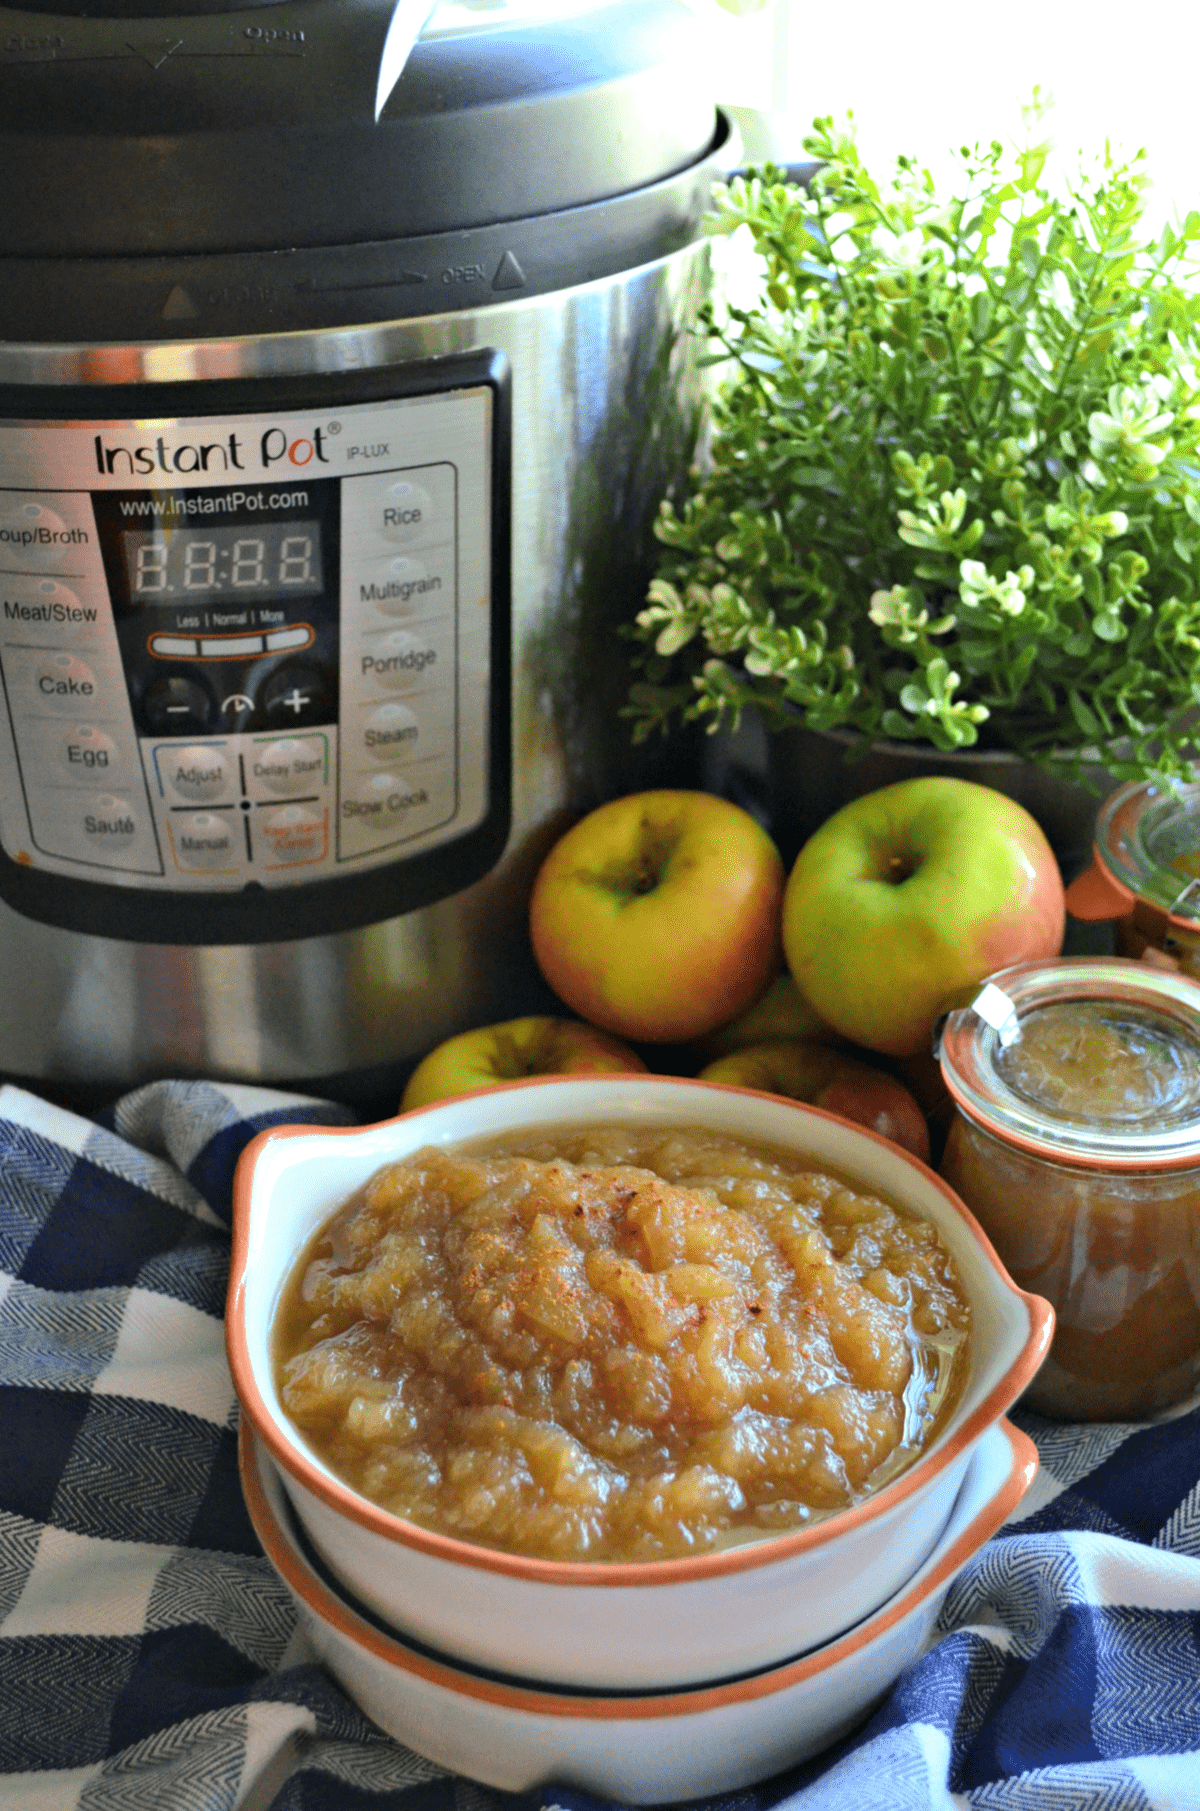 Bowl of applesauce with cinnamon with apples and instant pot in background.